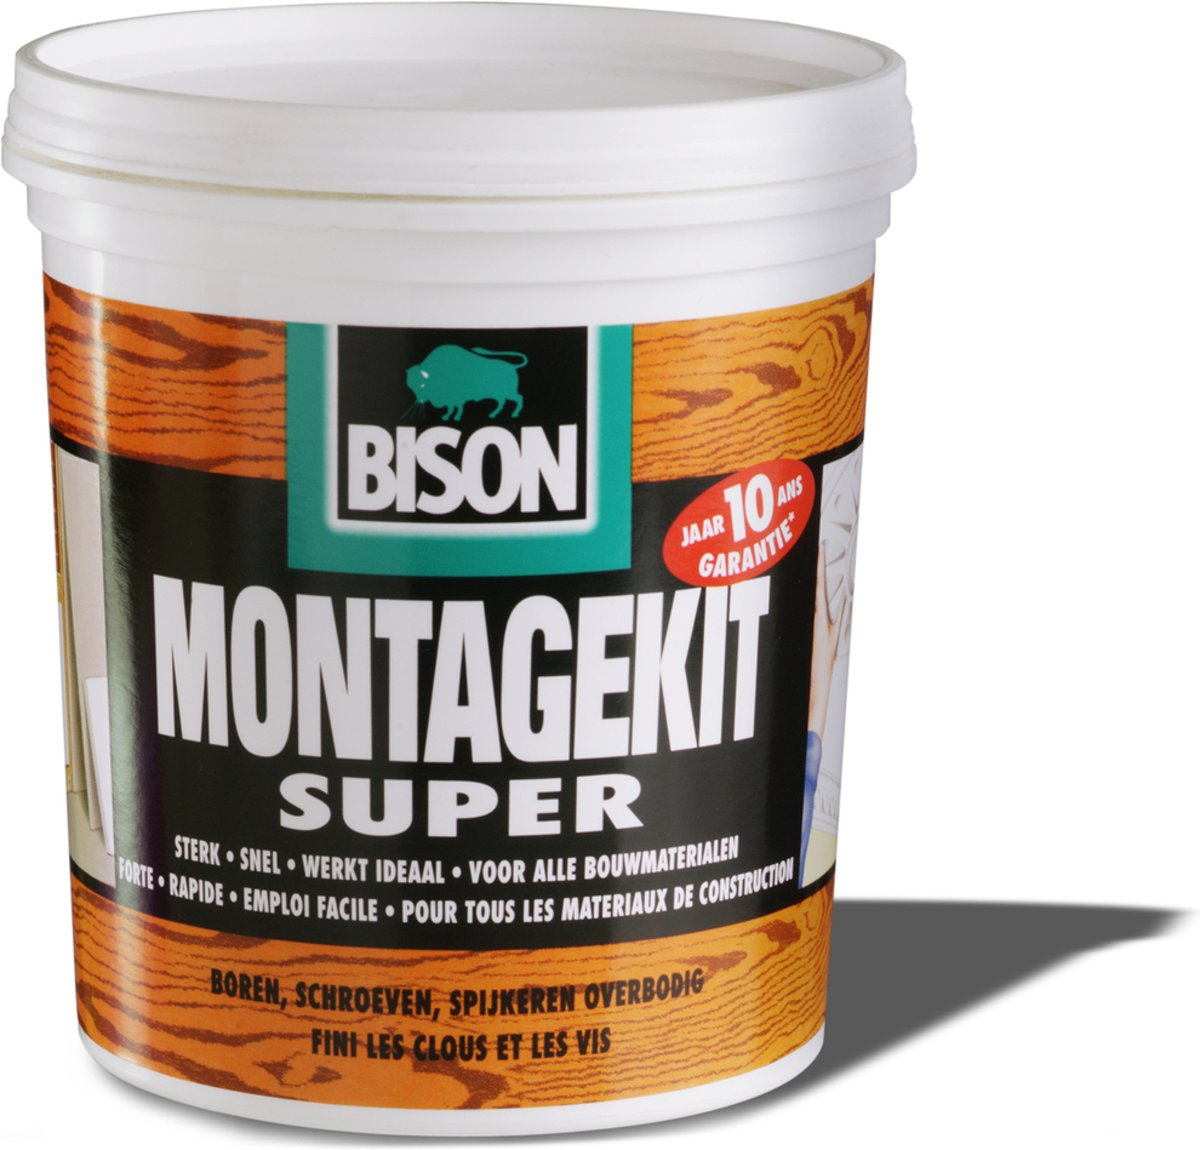 Bison Montagekit Super Montagekit Super 1 Kg Pot